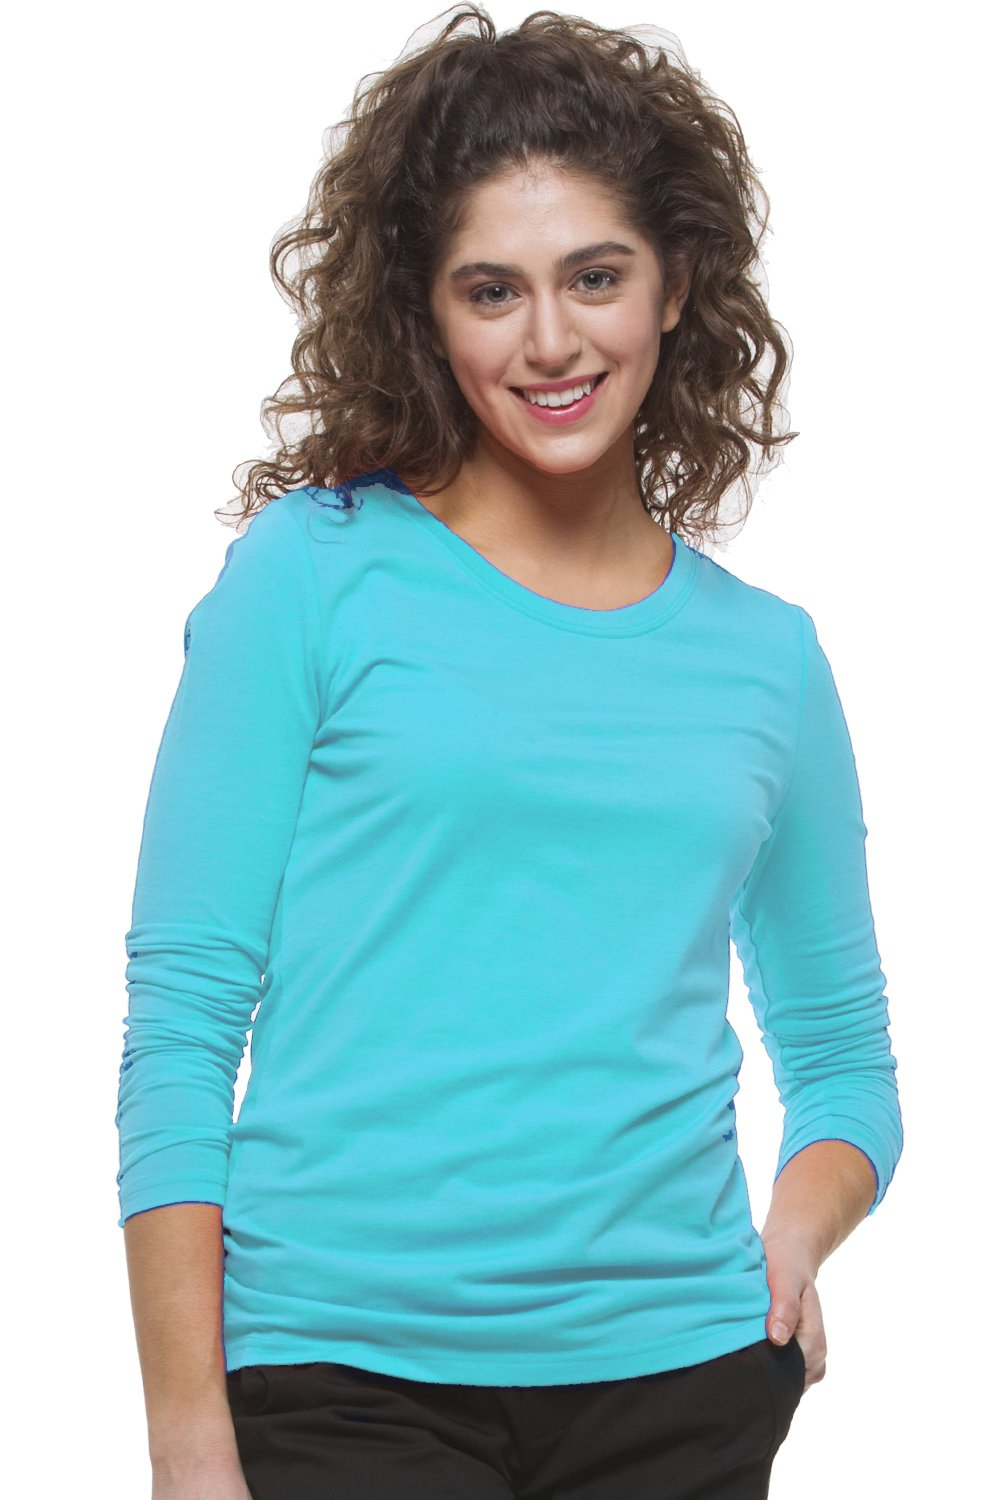 Healing Hands Scrubs Melissa 5047 Knit Long Sleeve Underscrub Tee Shirt- Turquoise- 2XL by Healing Hands